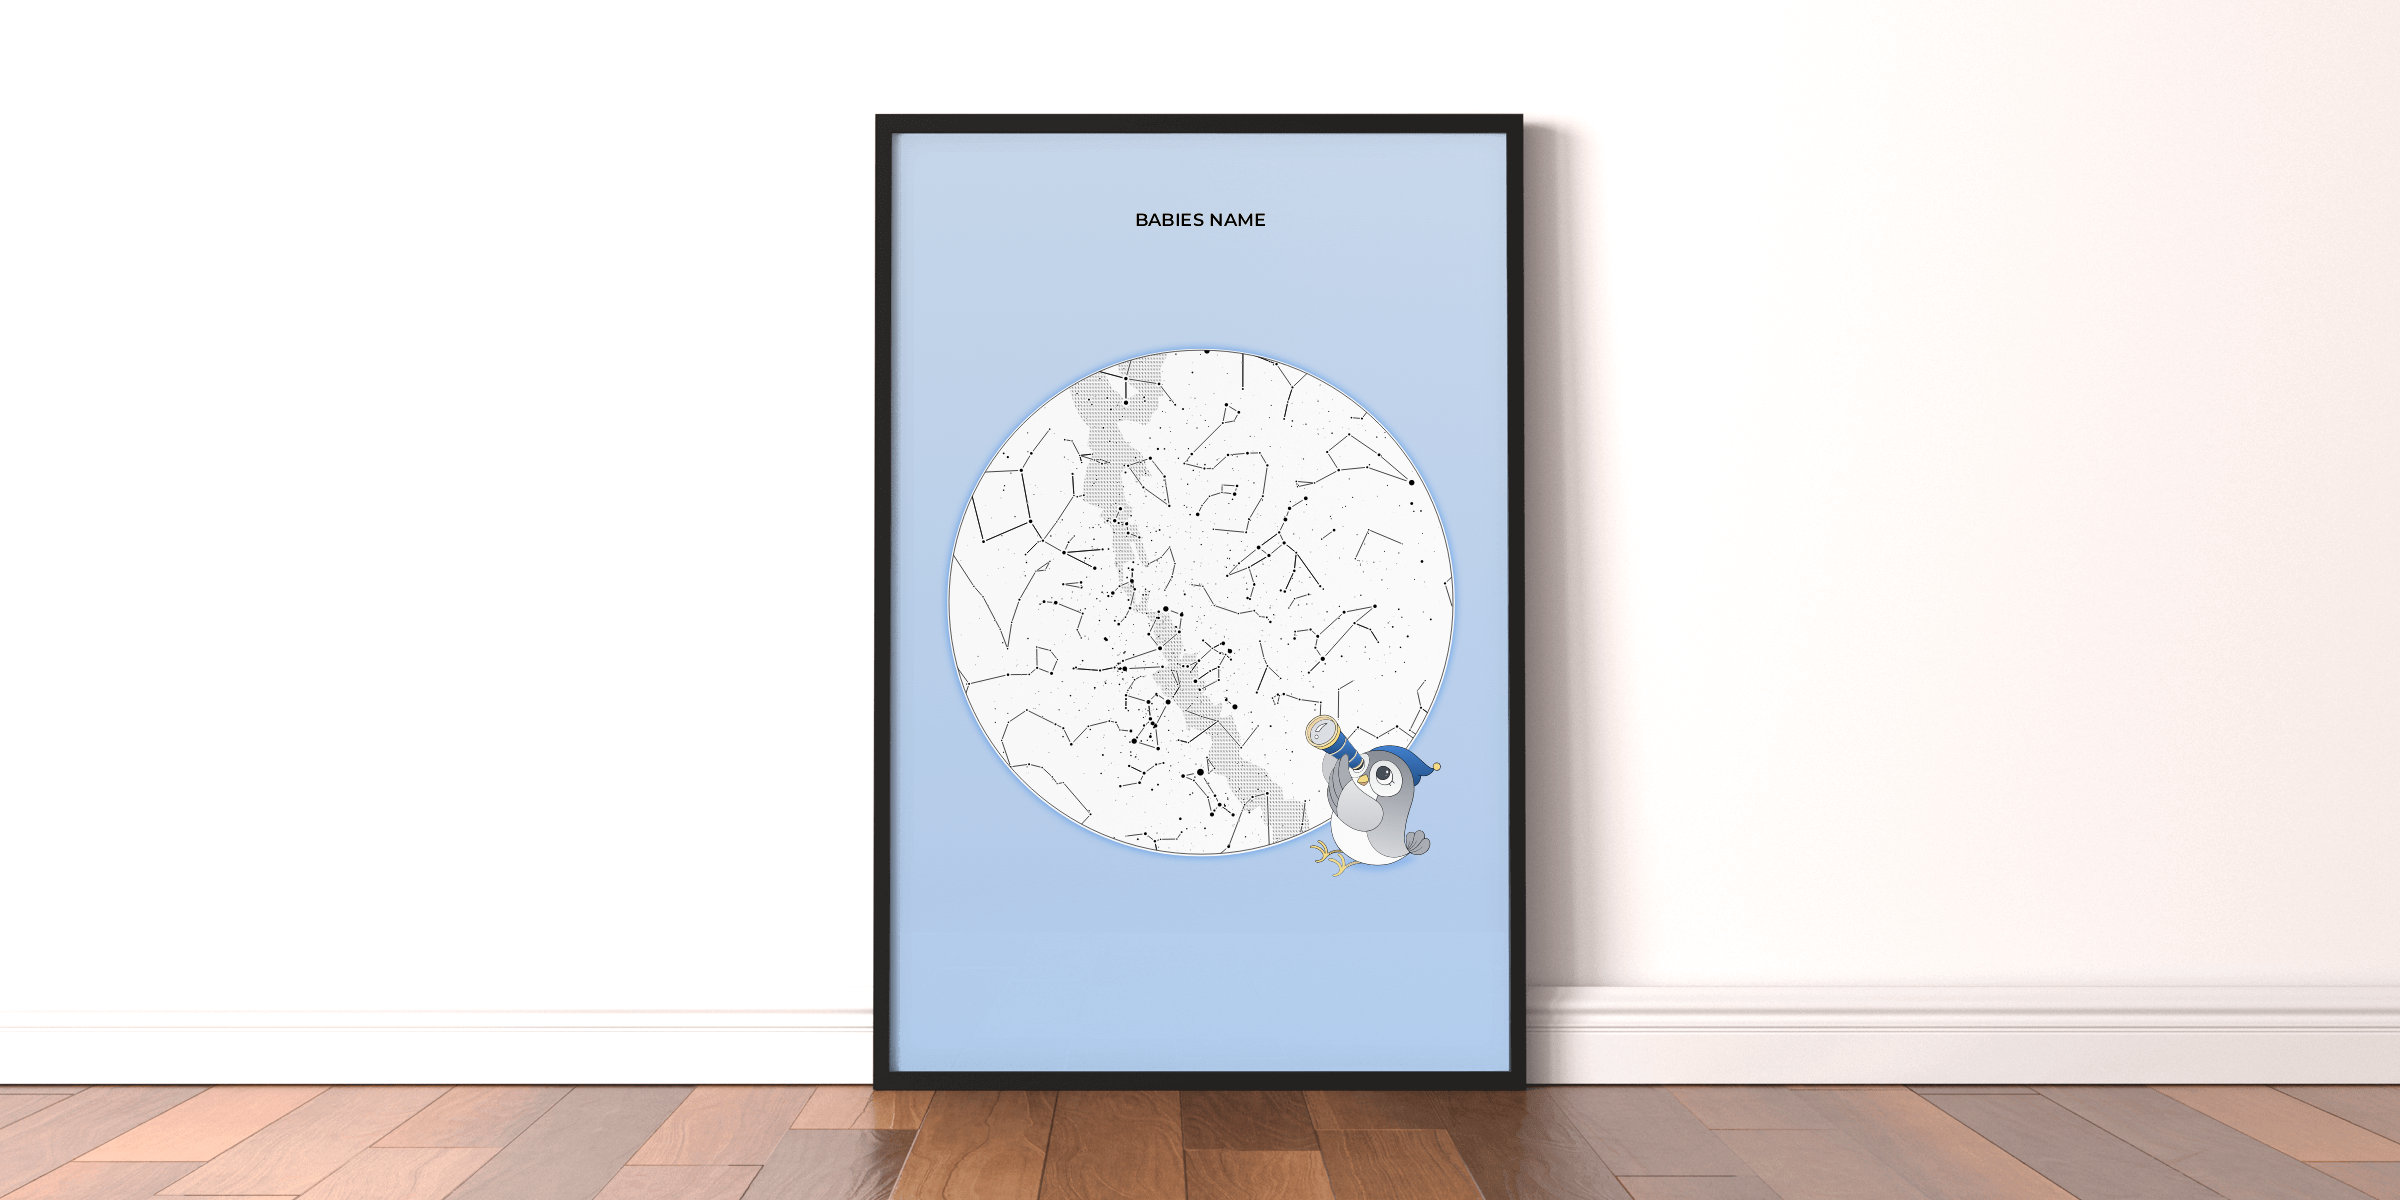 A new star map design for your newest family member